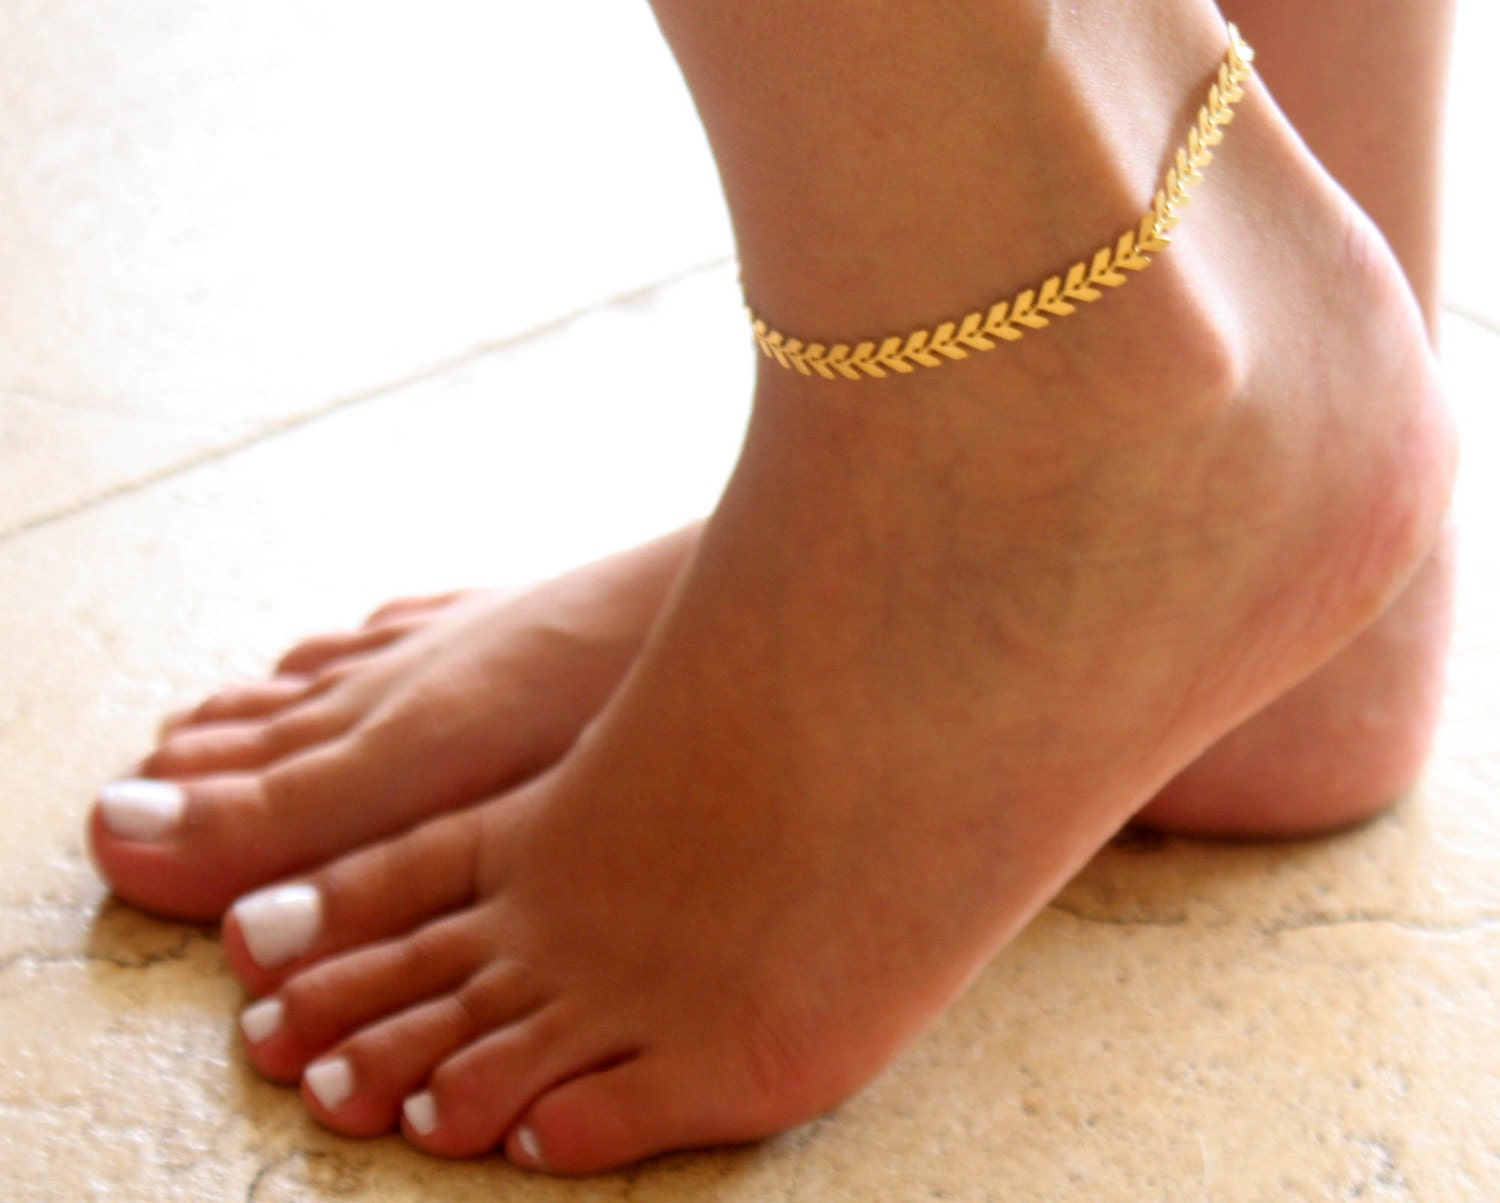 beaded black pulseras ankle tornozeleira jewelry item anklet gold tobilleras foot women bracelet beads enkelbandje leg